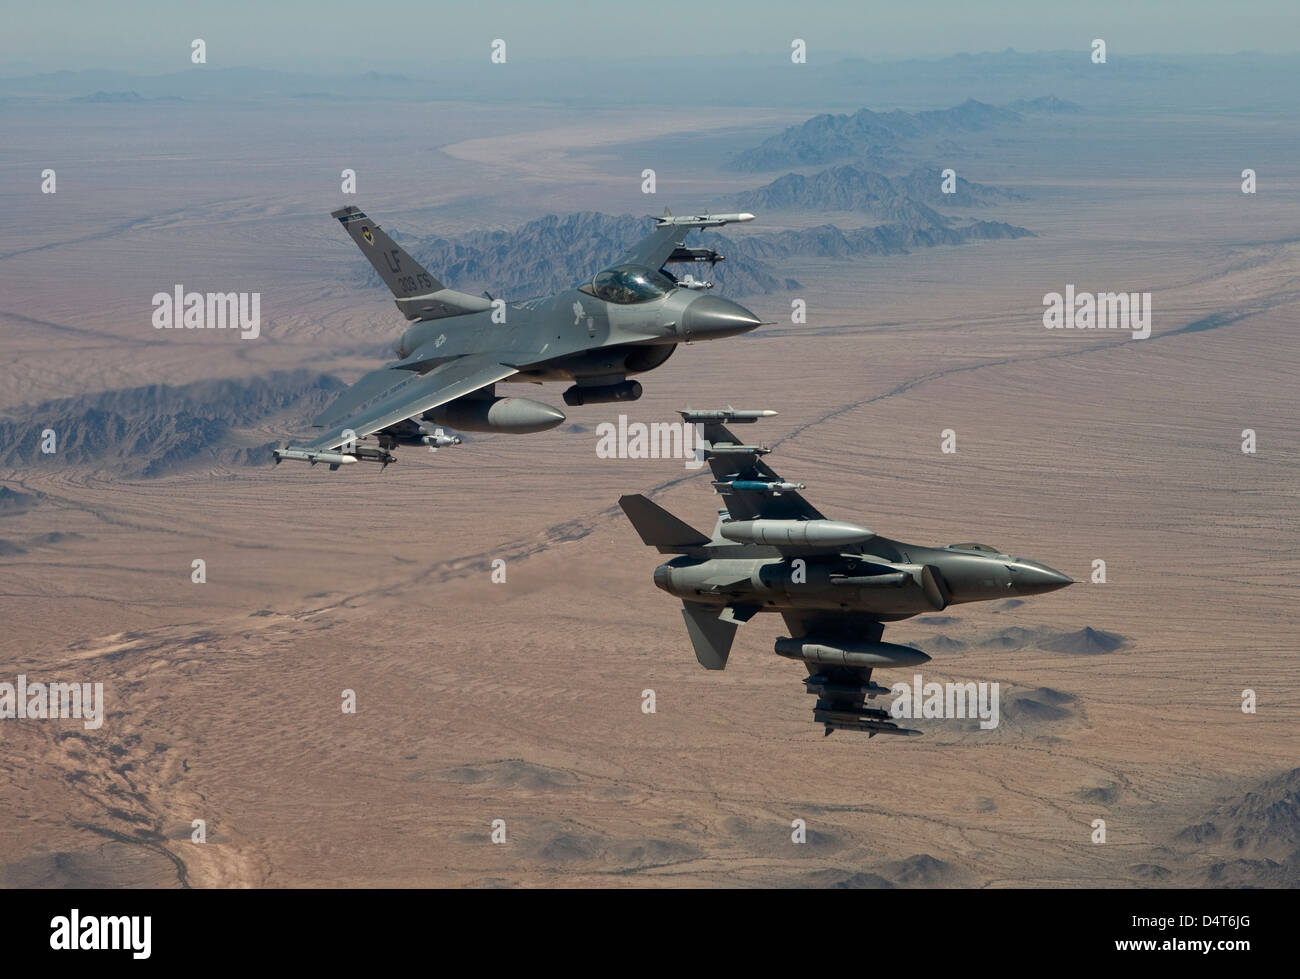 Two F-16's from the 56th Fighter Wing at Luke Air Force Base, Arizona, manuever on a training mission over the - Stock Image